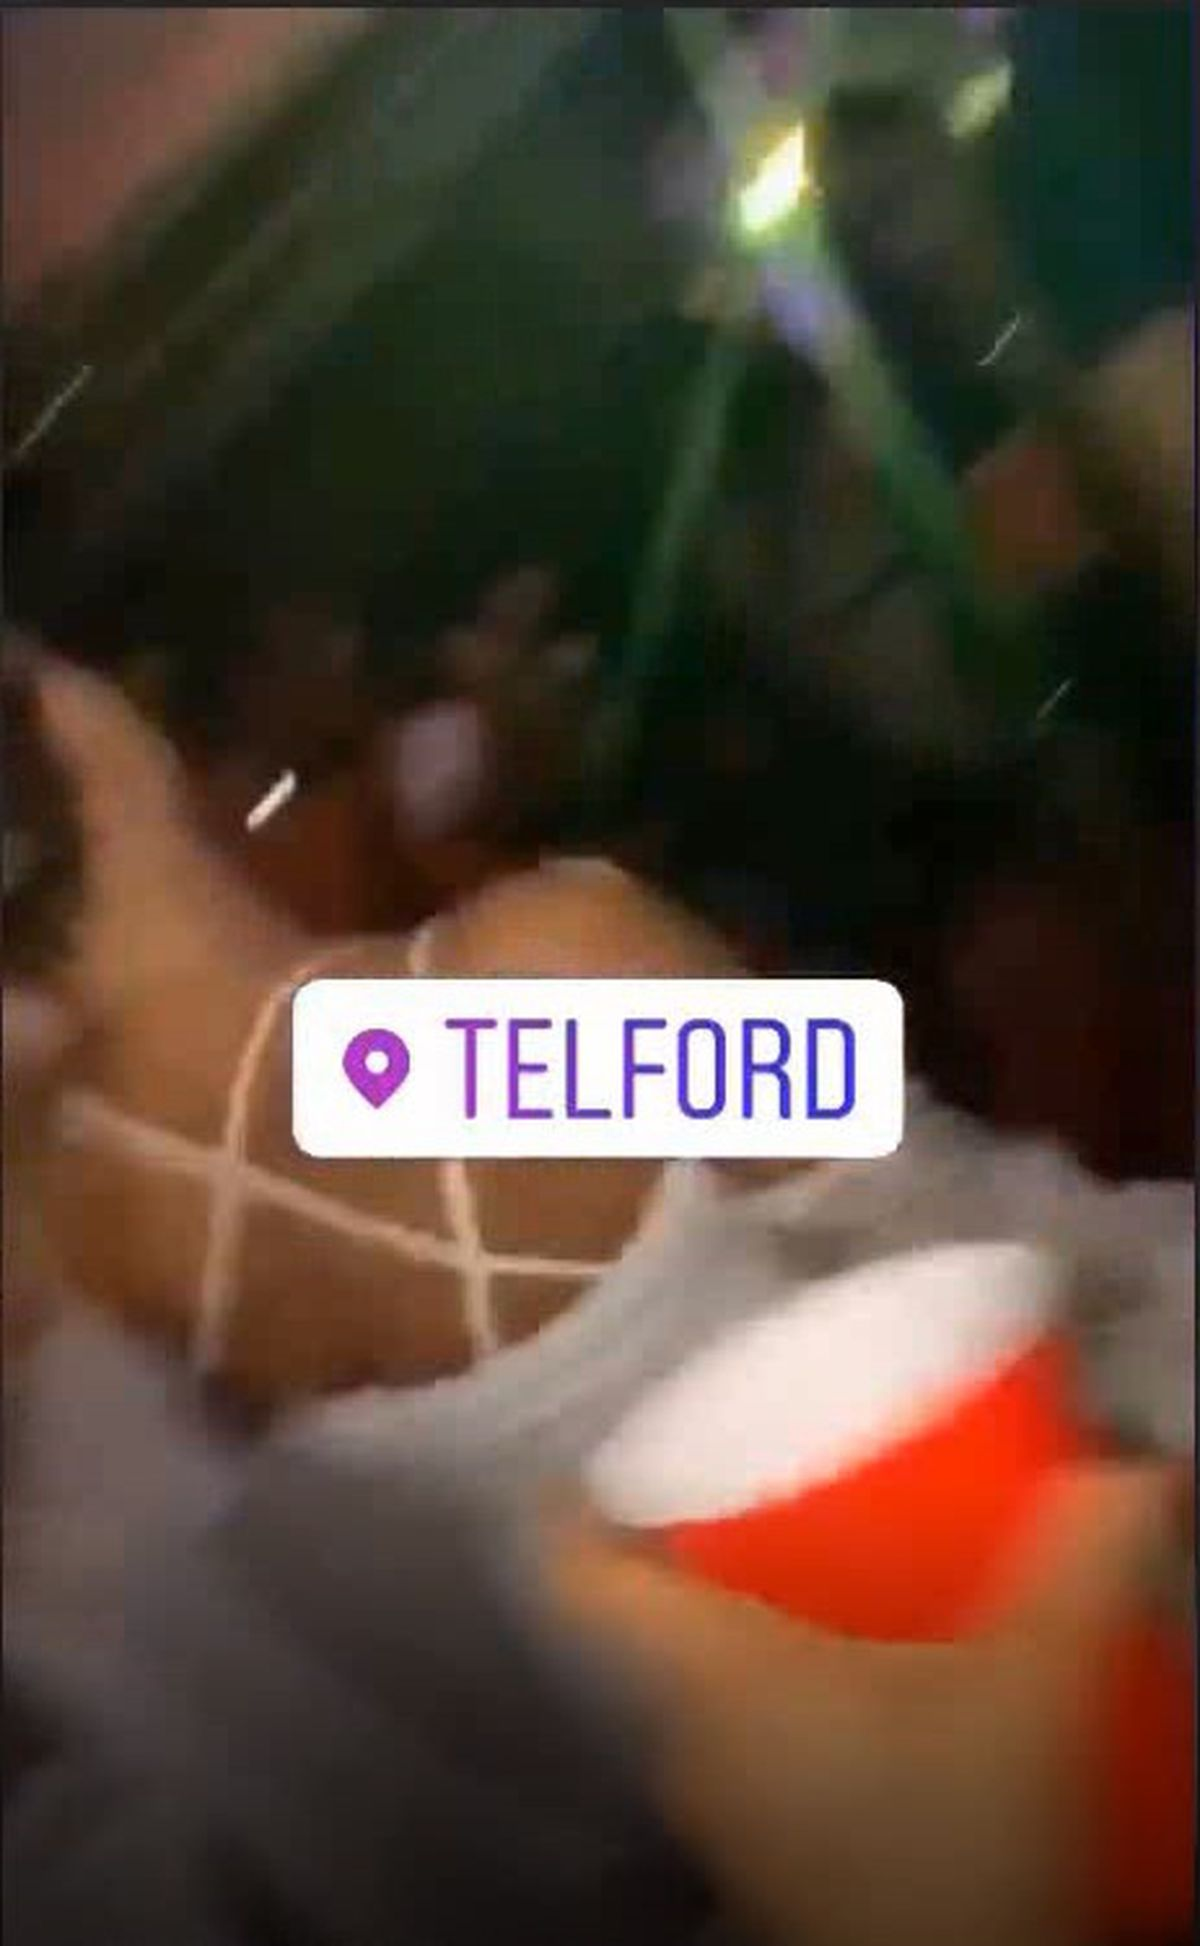 Some pictures tagged the location as 'Telford'